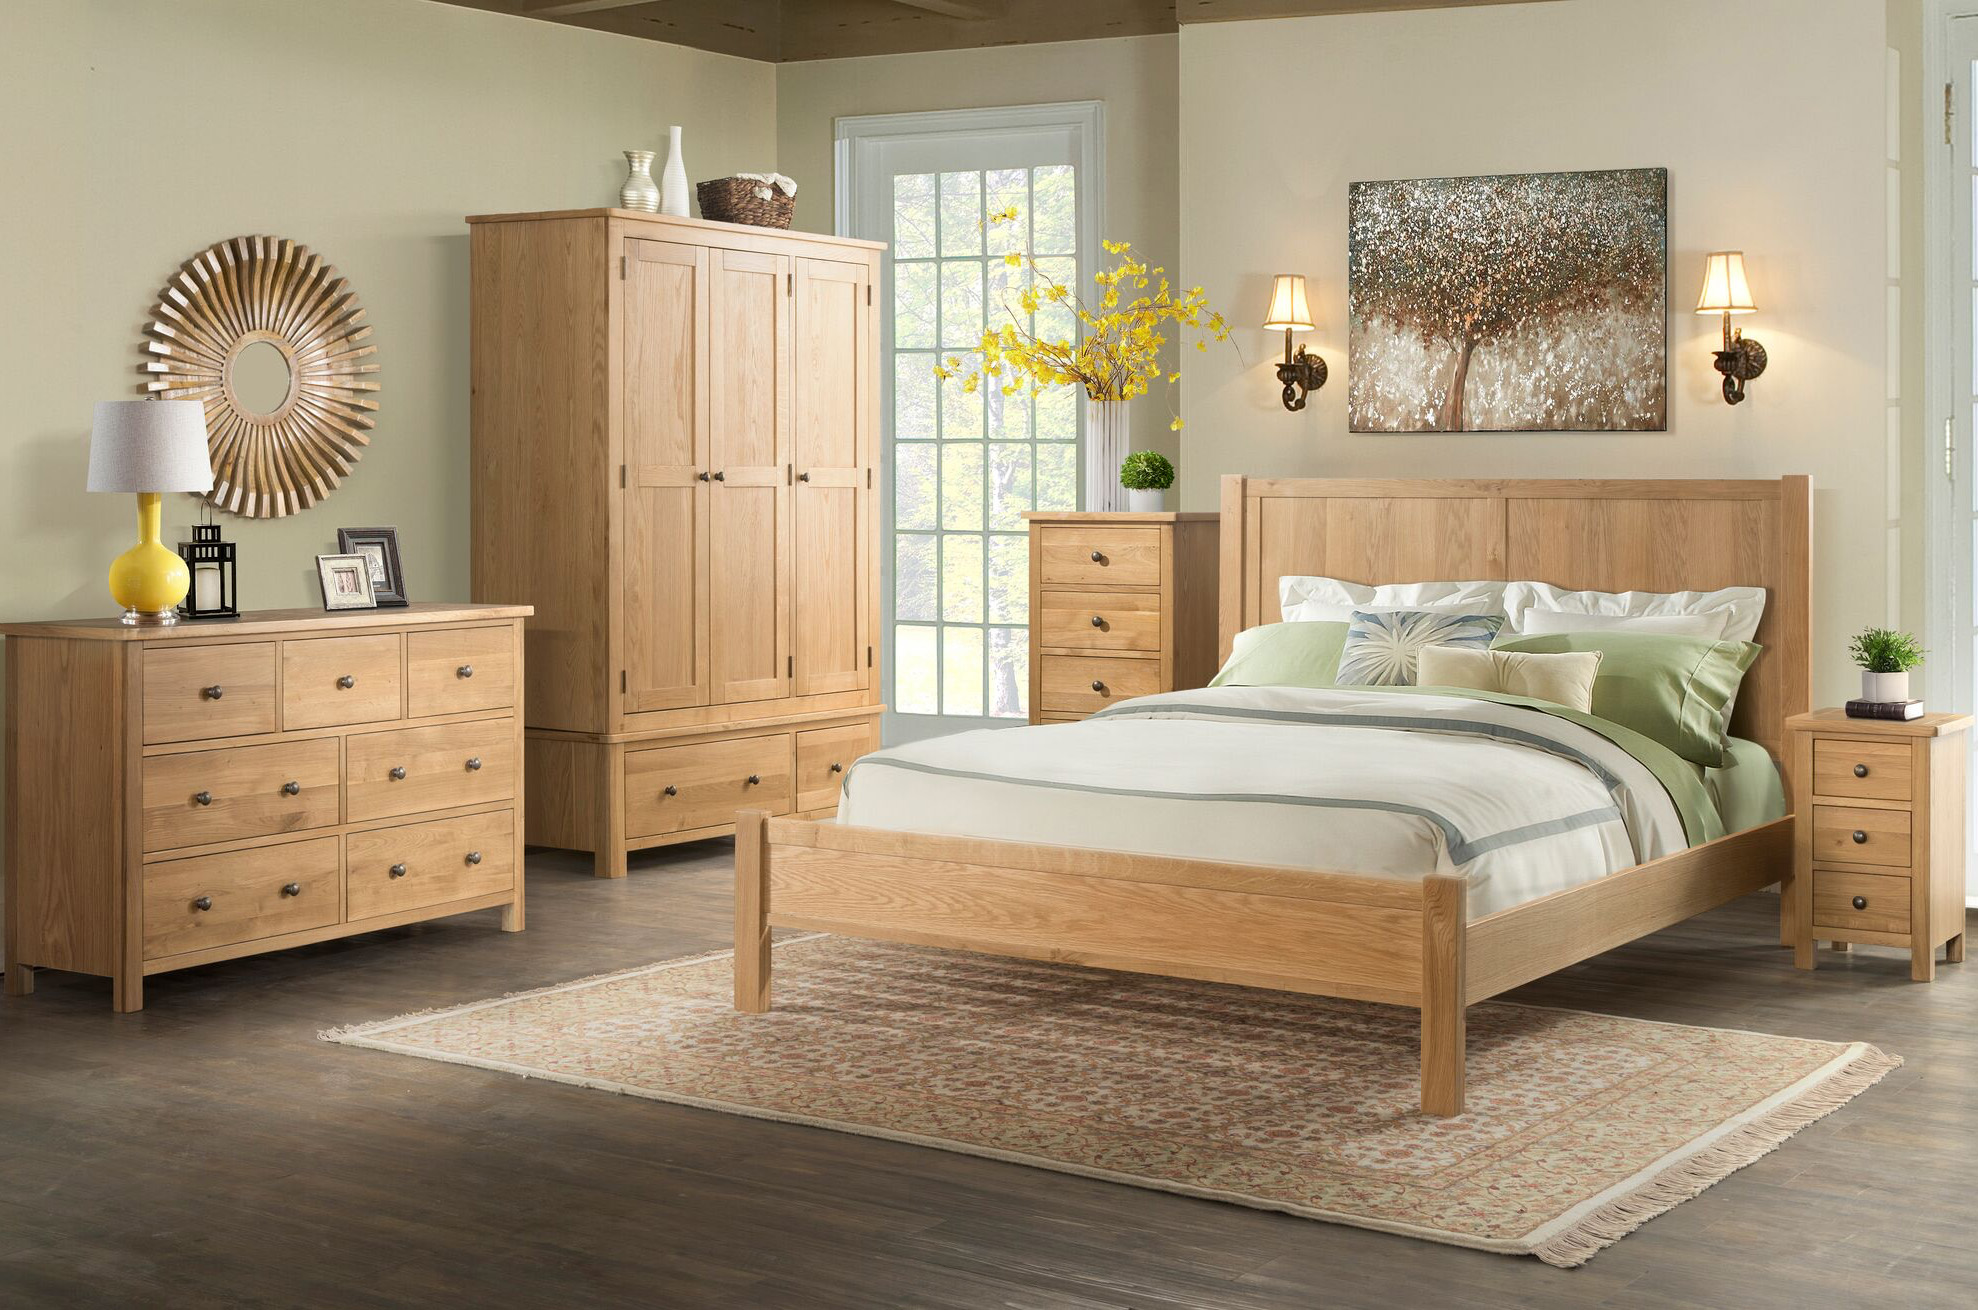 ltlt previous modular bedroom furniture. Burford Oak - NEW! Ltlt Previous Modular Bedroom Furniture L